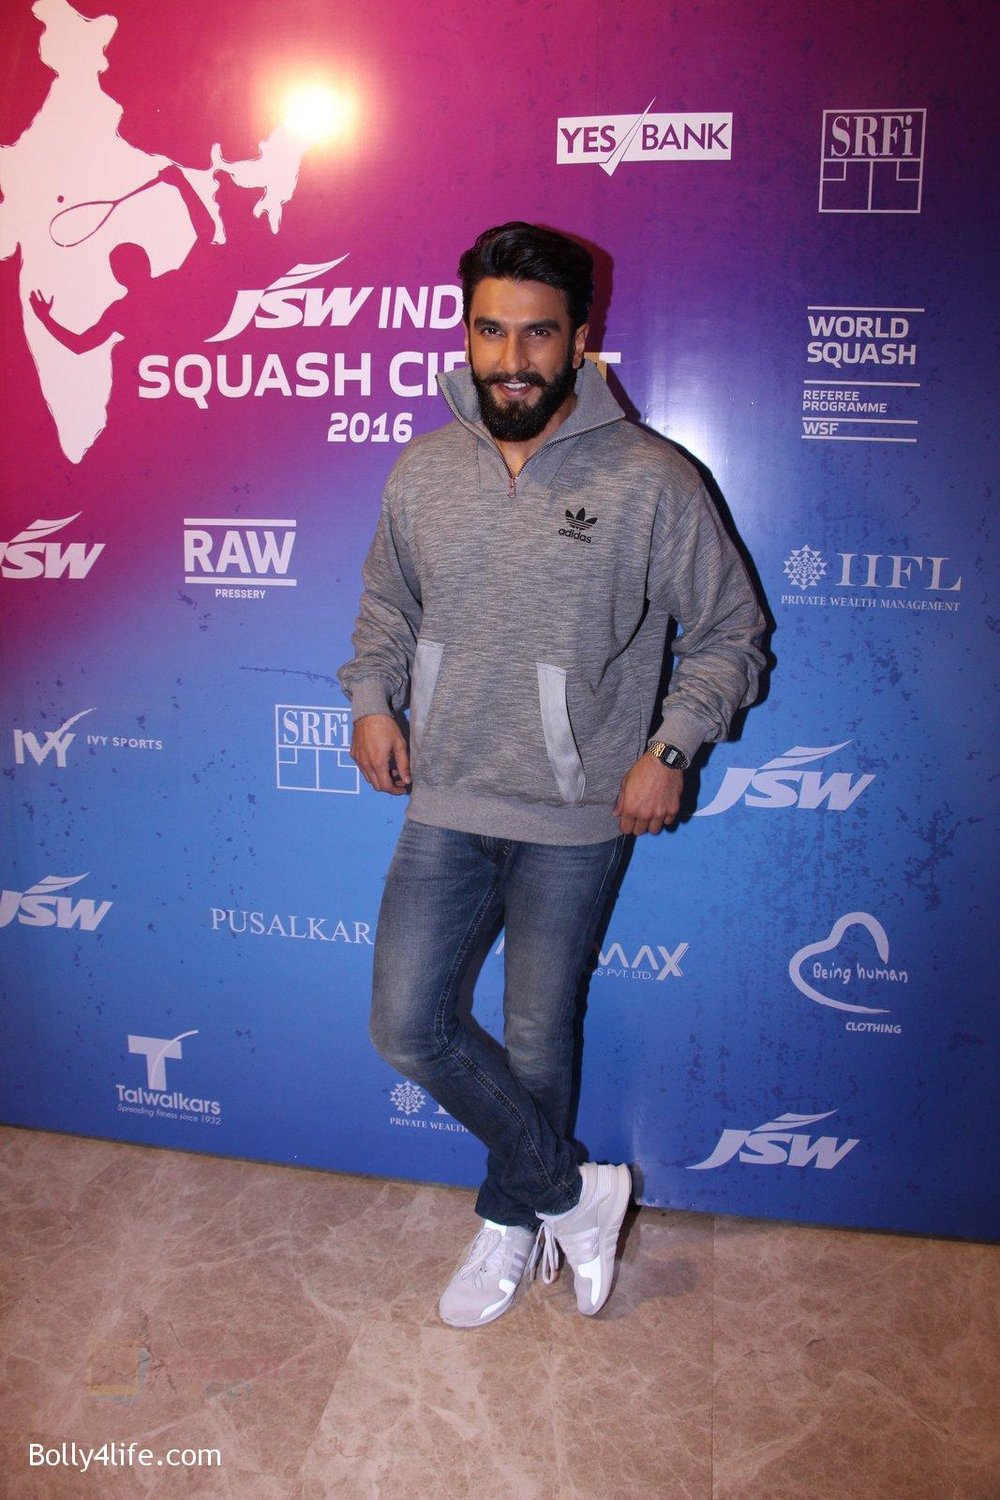 Ranveer-Singh-at-JSW-awards-function-on-2nd-Oct-2016-21.jpg